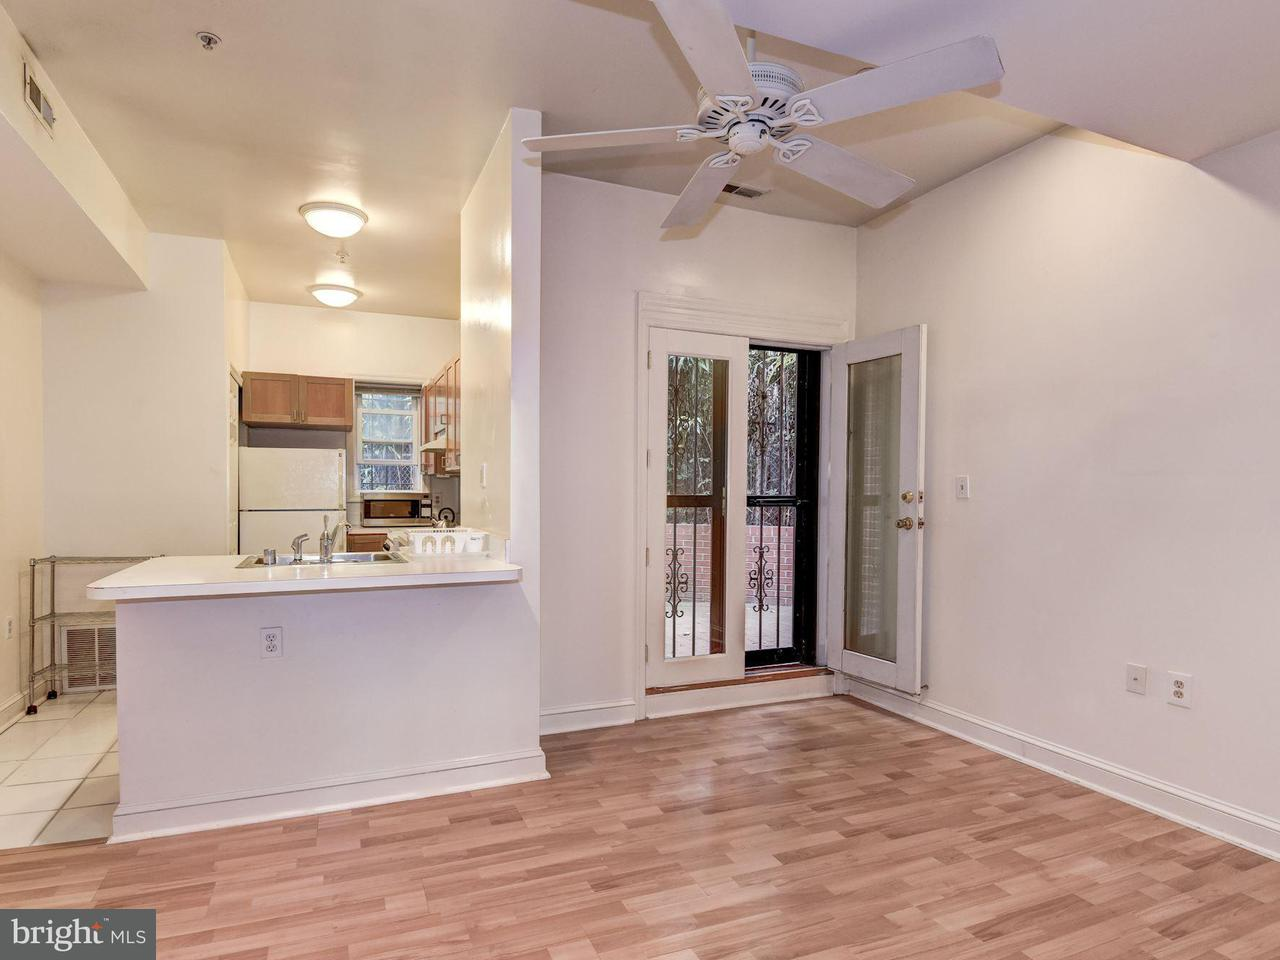 Additional photo for property listing at 2303 17th St NW  Washington, District Of Columbia 20009 United States